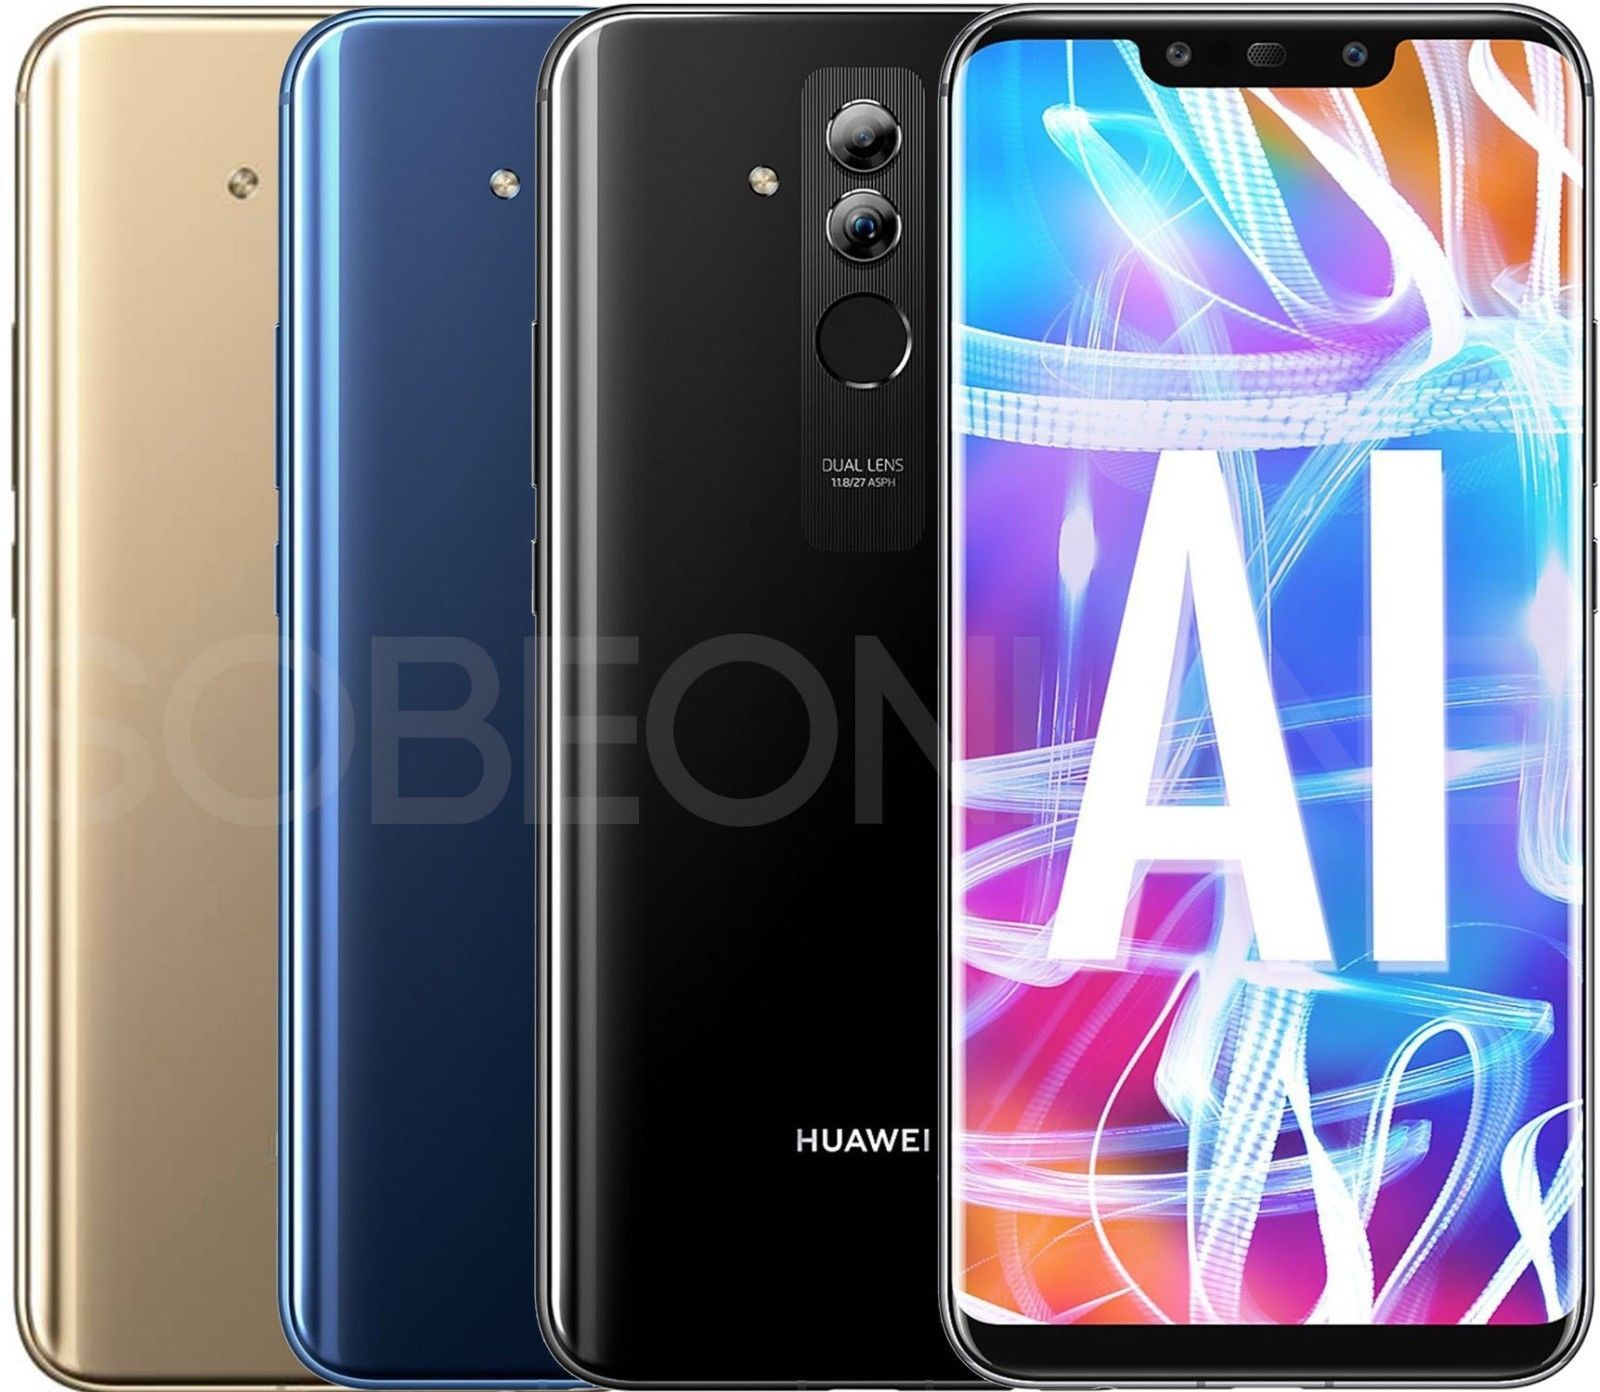 Cell Phones And Smartphones 9355 New Huawei Mate 20 Lite Lx3 64gb Factory Unlocked Gsm 6 3 International Model Buy It Now Phone Smartphones For Sale 64gb